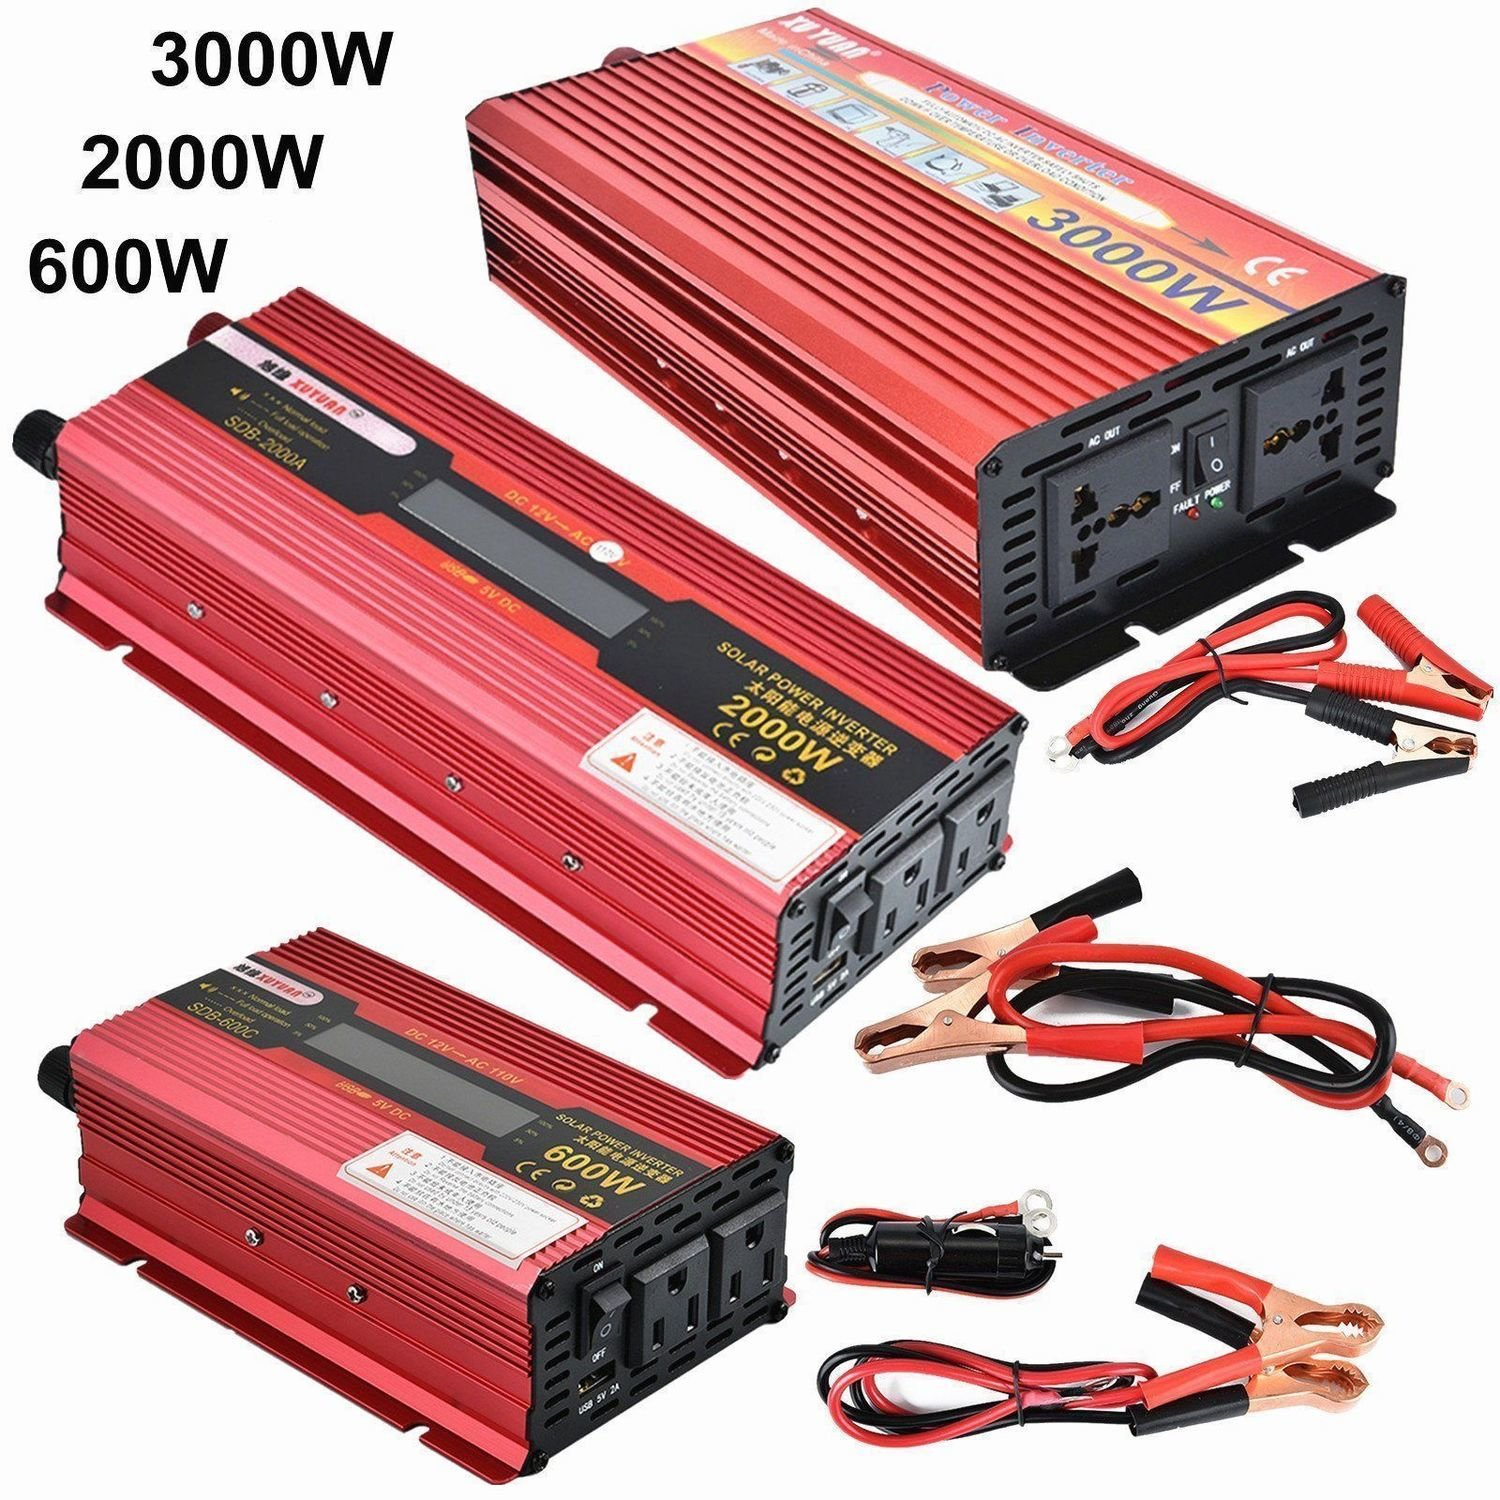 Power Inverter 3000 WATT DC 12V/24V to AC 110V Charger Converter